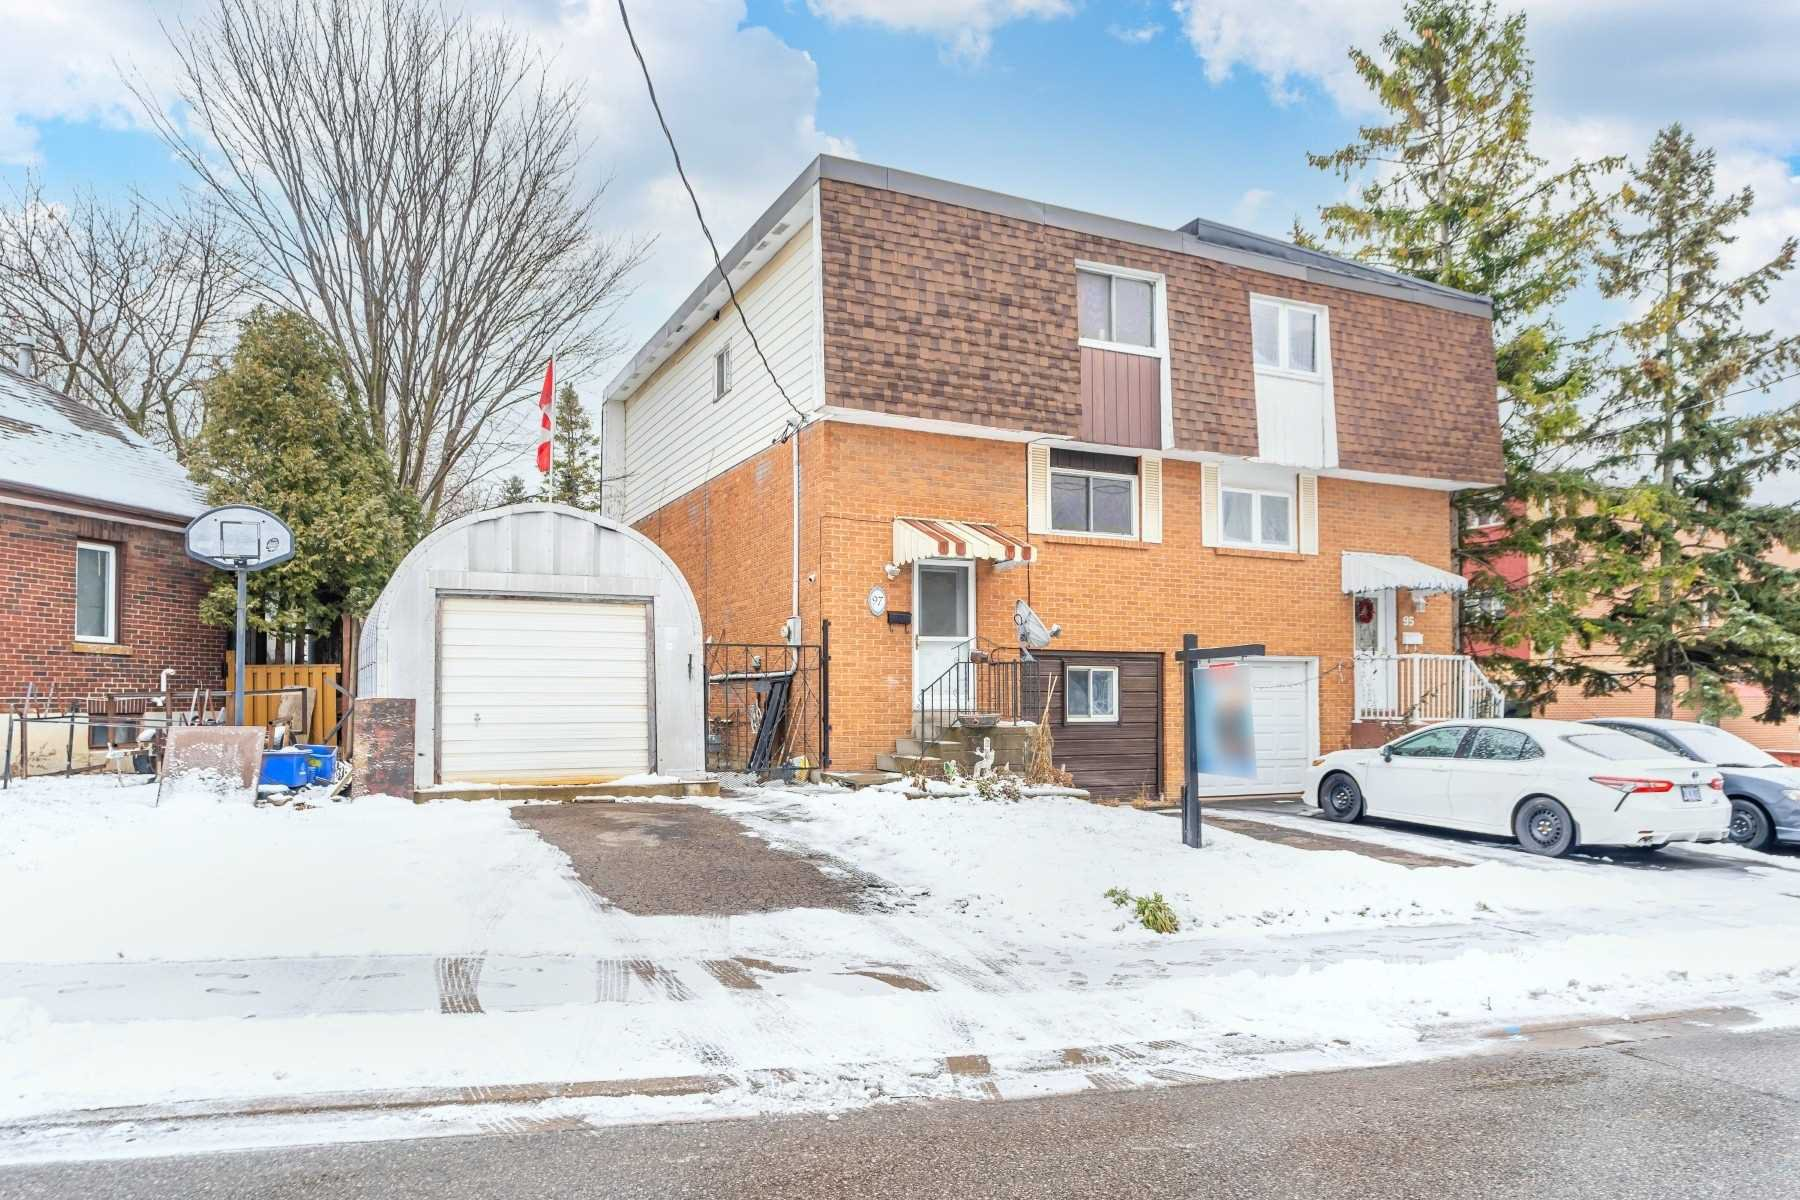 Main Photo: 97 Conant Street in Oshawa: Lakeview House (2-Storey) for sale : MLS®# E5076453